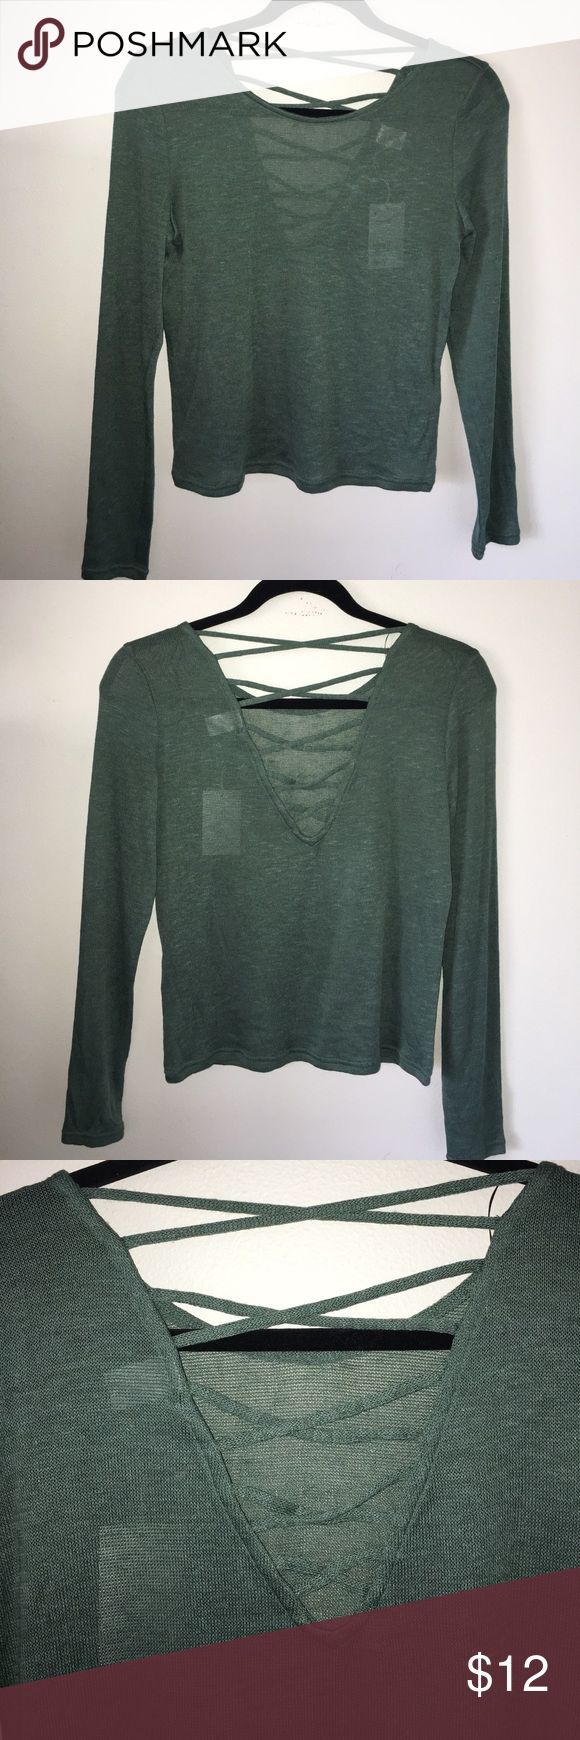 NWT Heathered Hunter Green Top Pantone color of the year Huntergreen! Lightweight spring/summer top with corset back detail. Tops